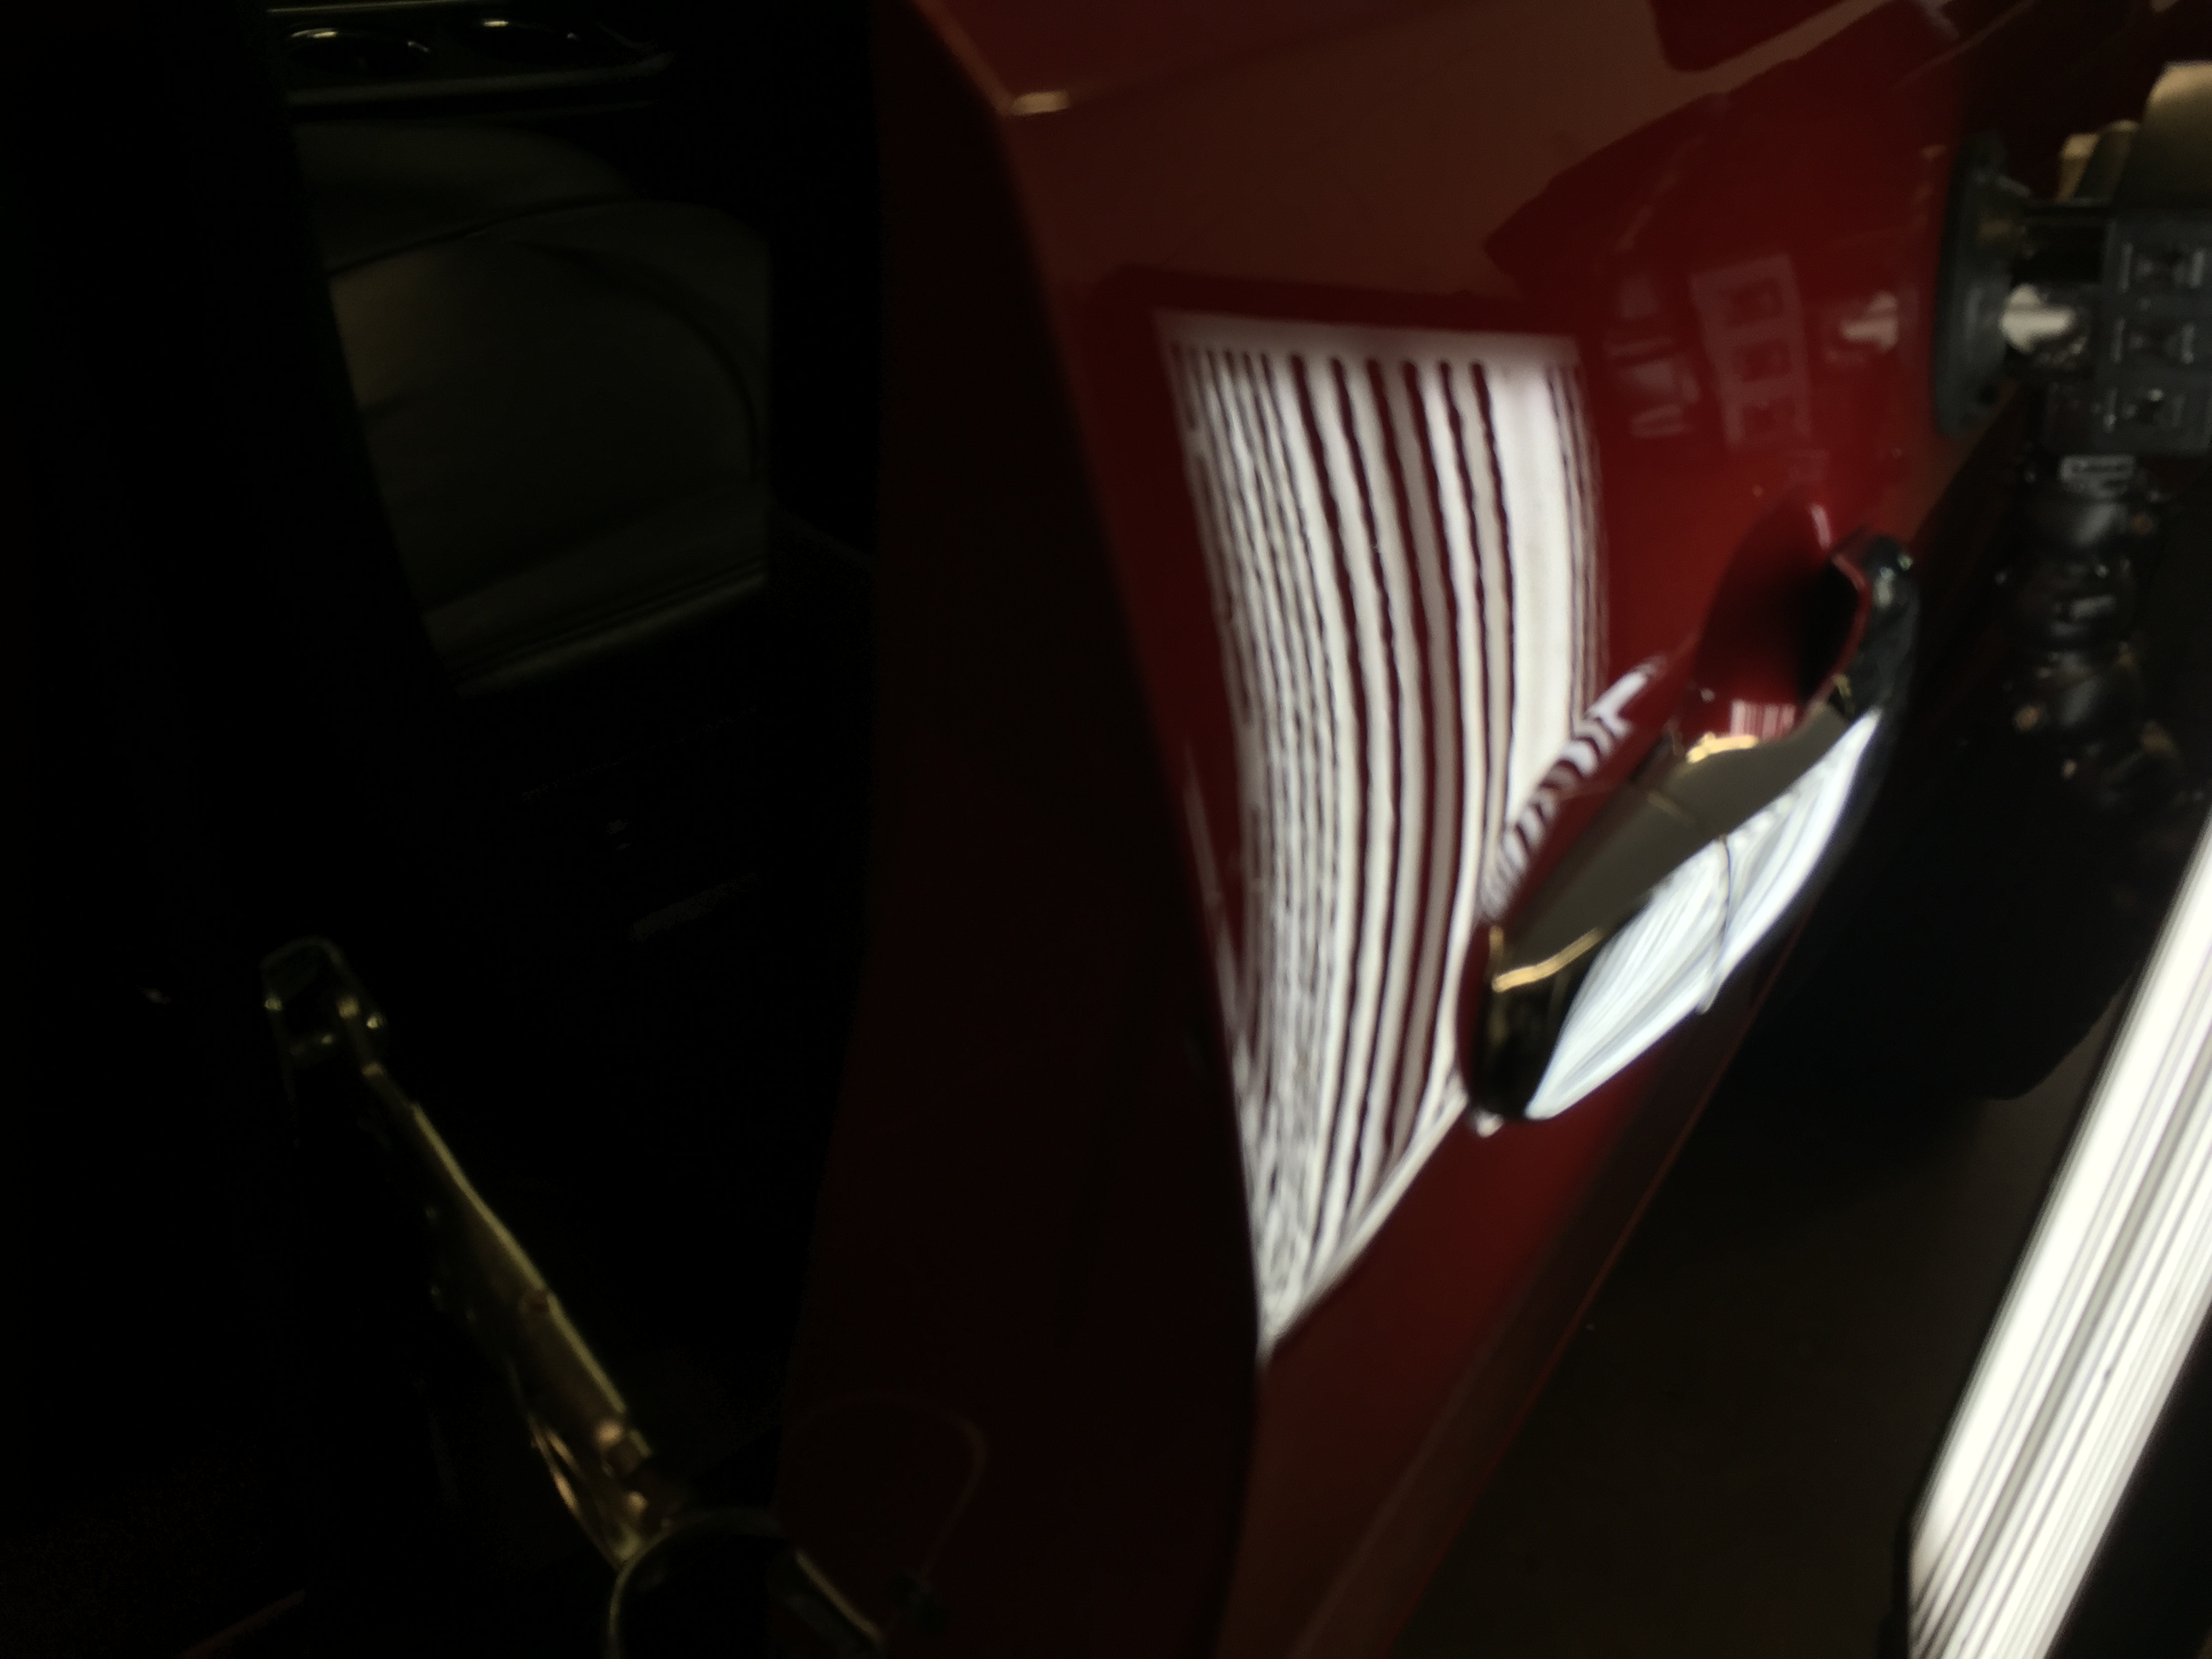 2012 Traverse Dent Removal in Springfield, IL, Paintless Dent Removal, Ding Repair, Traverse passenger Door, http://217dent.com